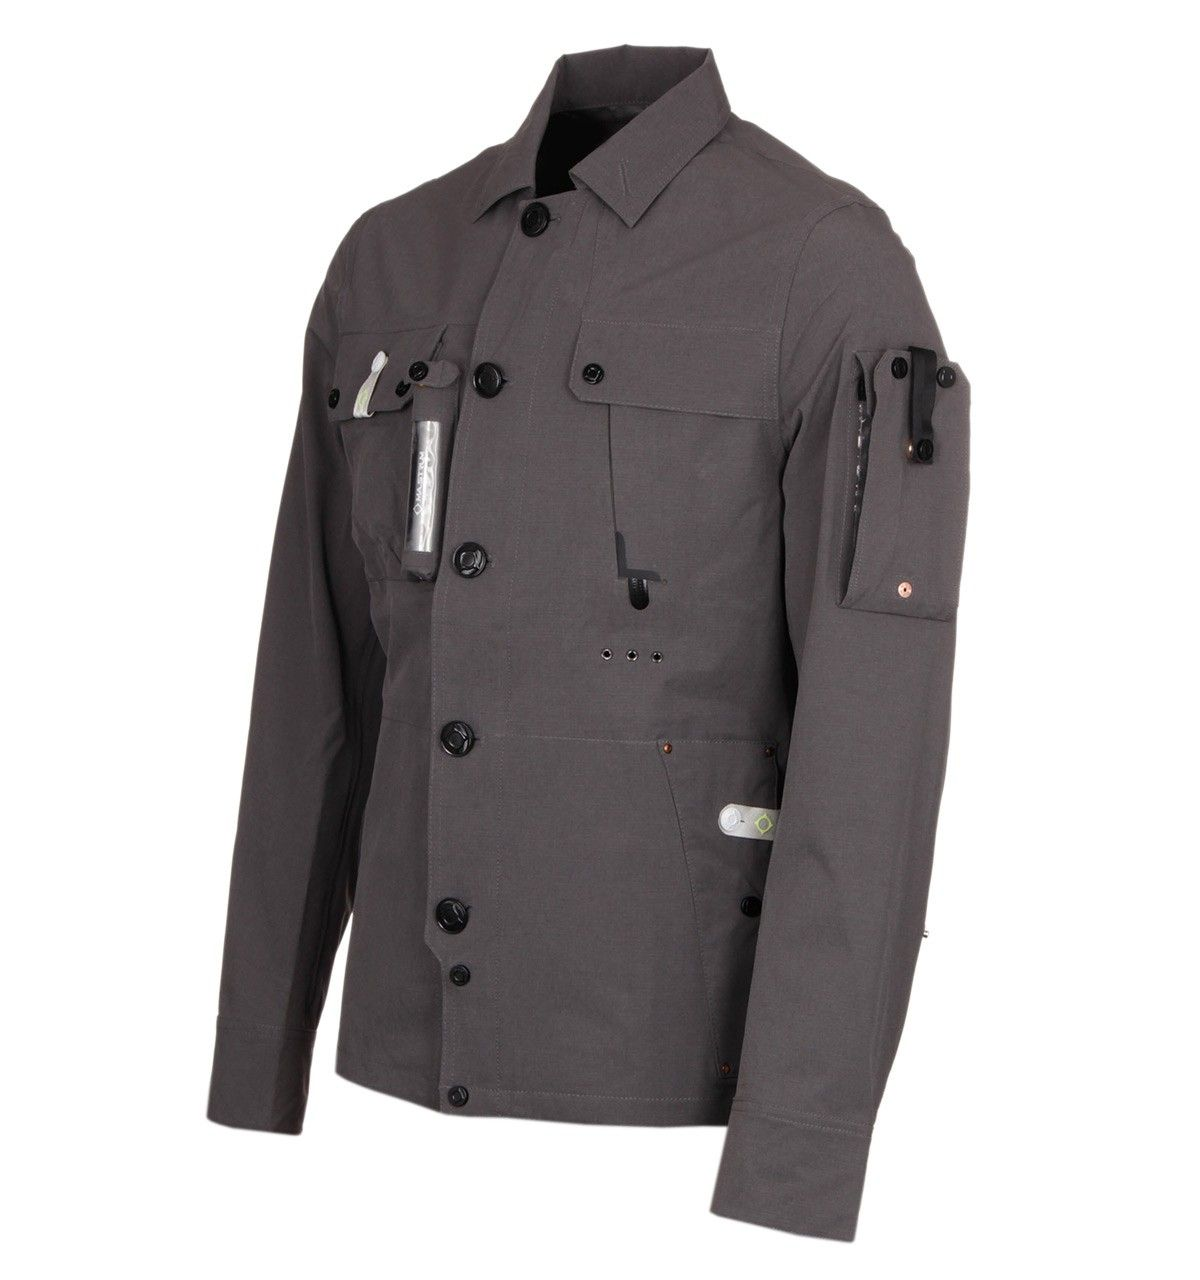 Ma Strum Battleship Grey All Weather Overshirt Stone Island Jacket Battleship Clothes